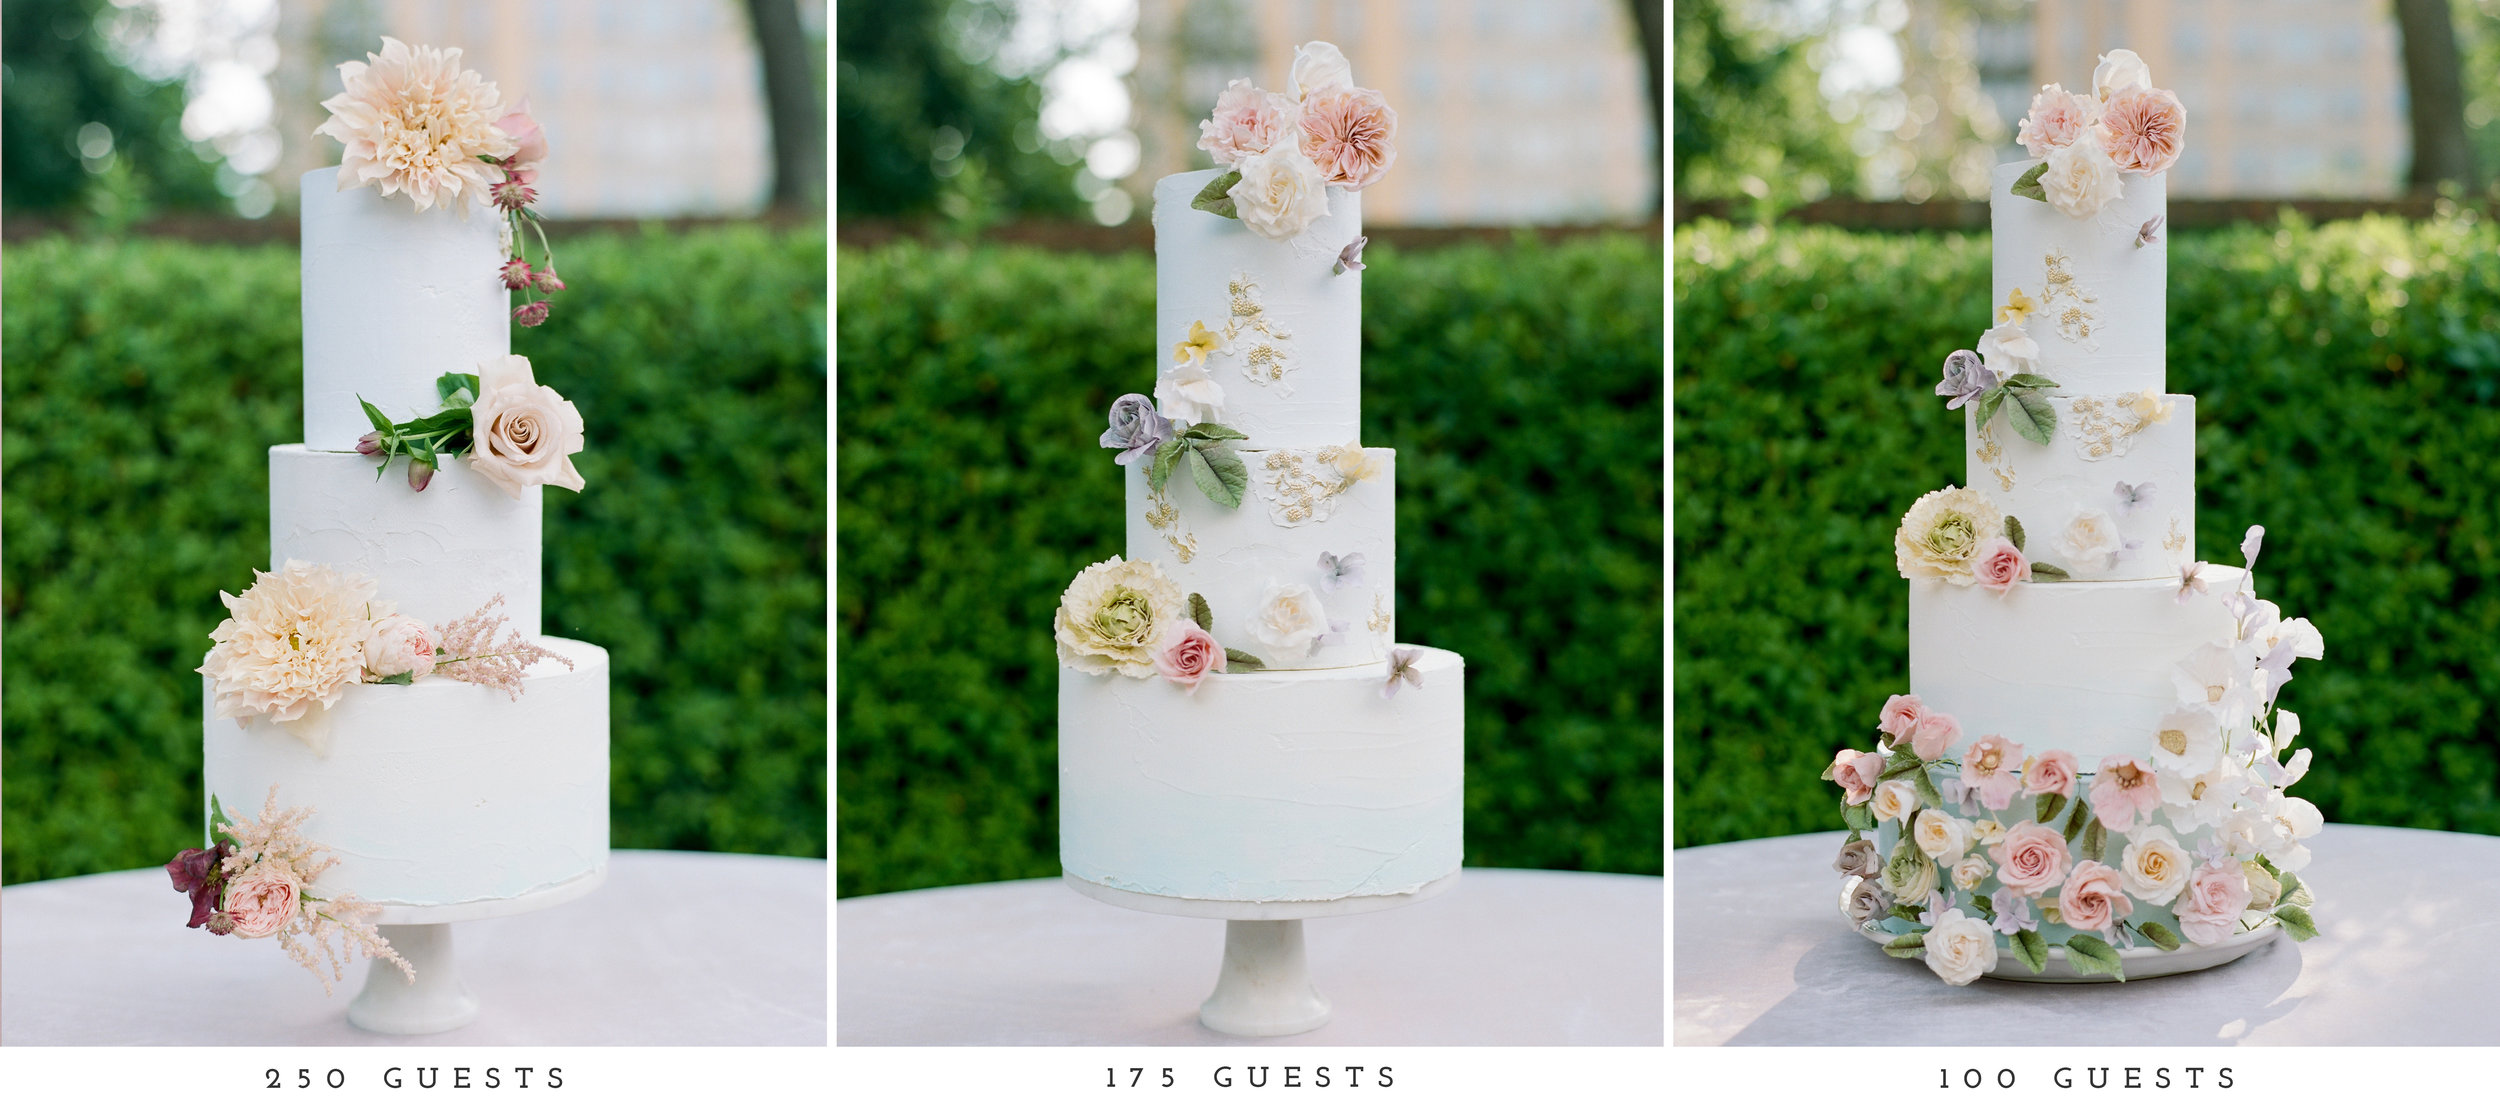 Buttercup Bakery specializes in sugar flowers, but understands that it isn't always an option for all budgets. For the 250 guest count, only real flowers were used but as the guest count went down, more sugar flowers and custom flavors were added in.